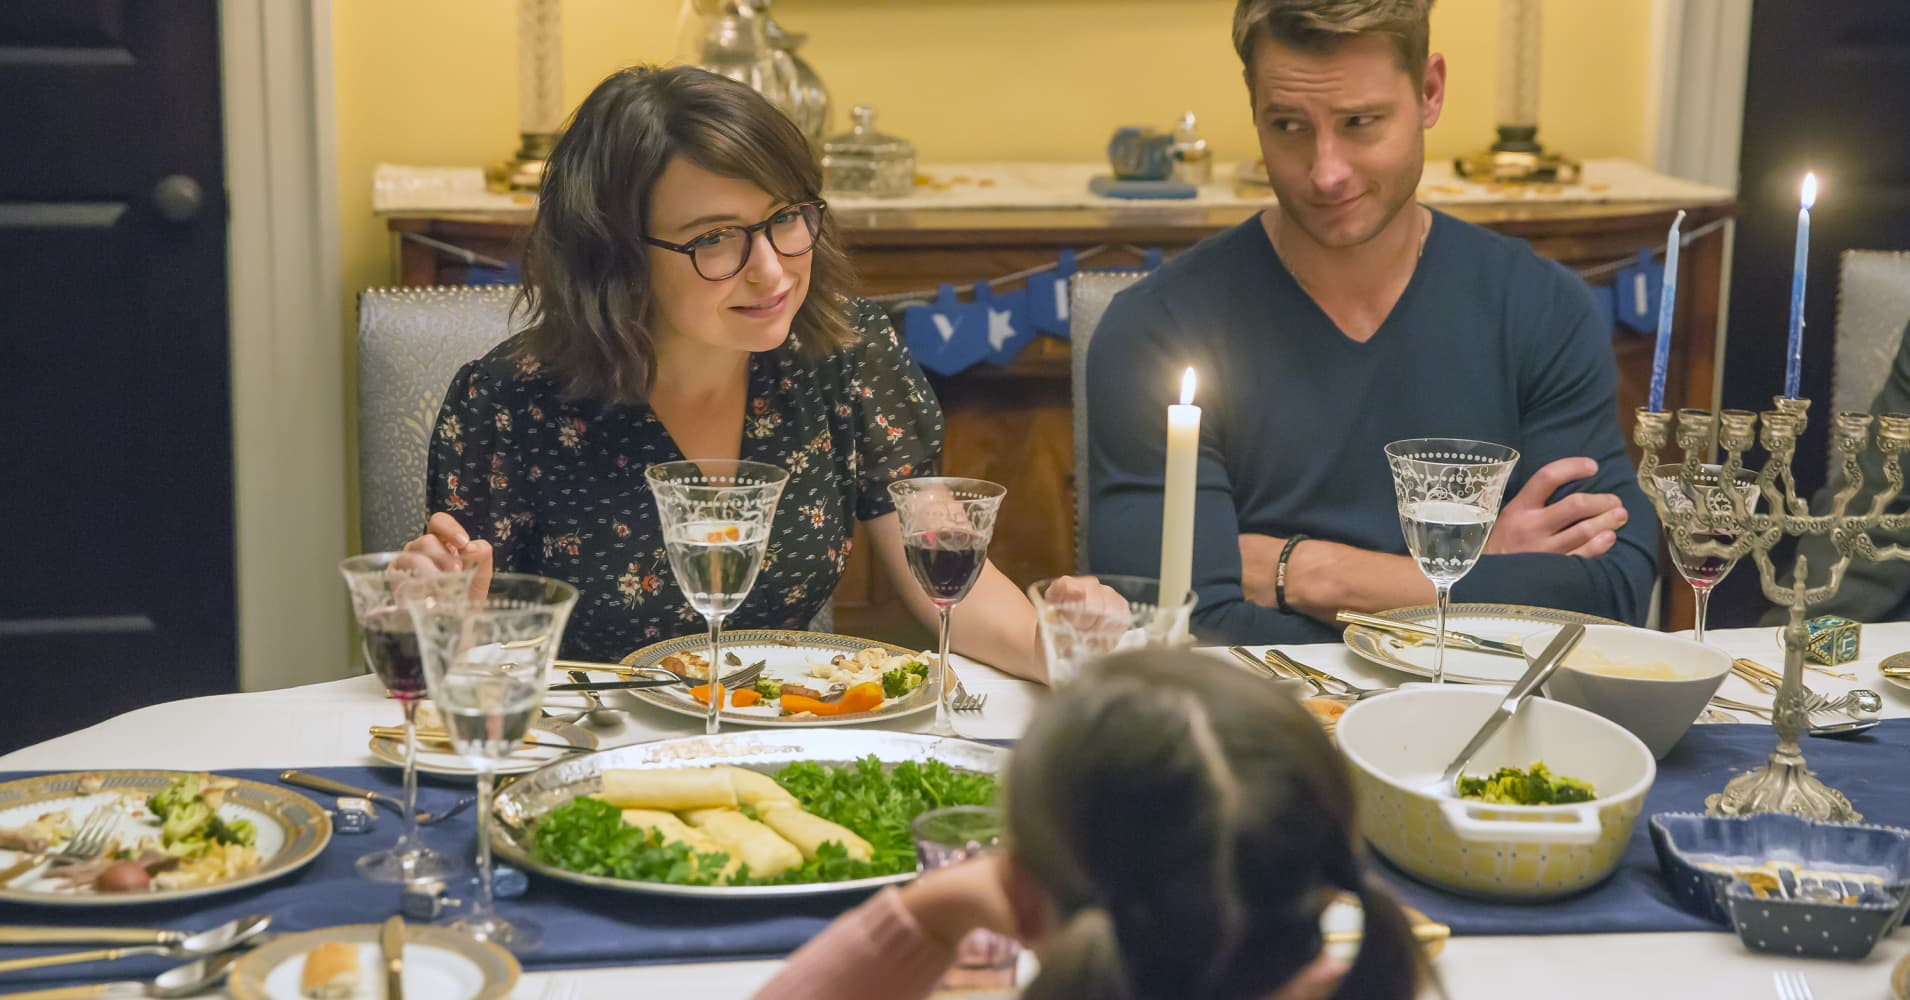 """A family dinner from TV show, """"This is Us,"""" featuring Milana Vayntrub as Sloane and Justin Hartley as Kevin."""